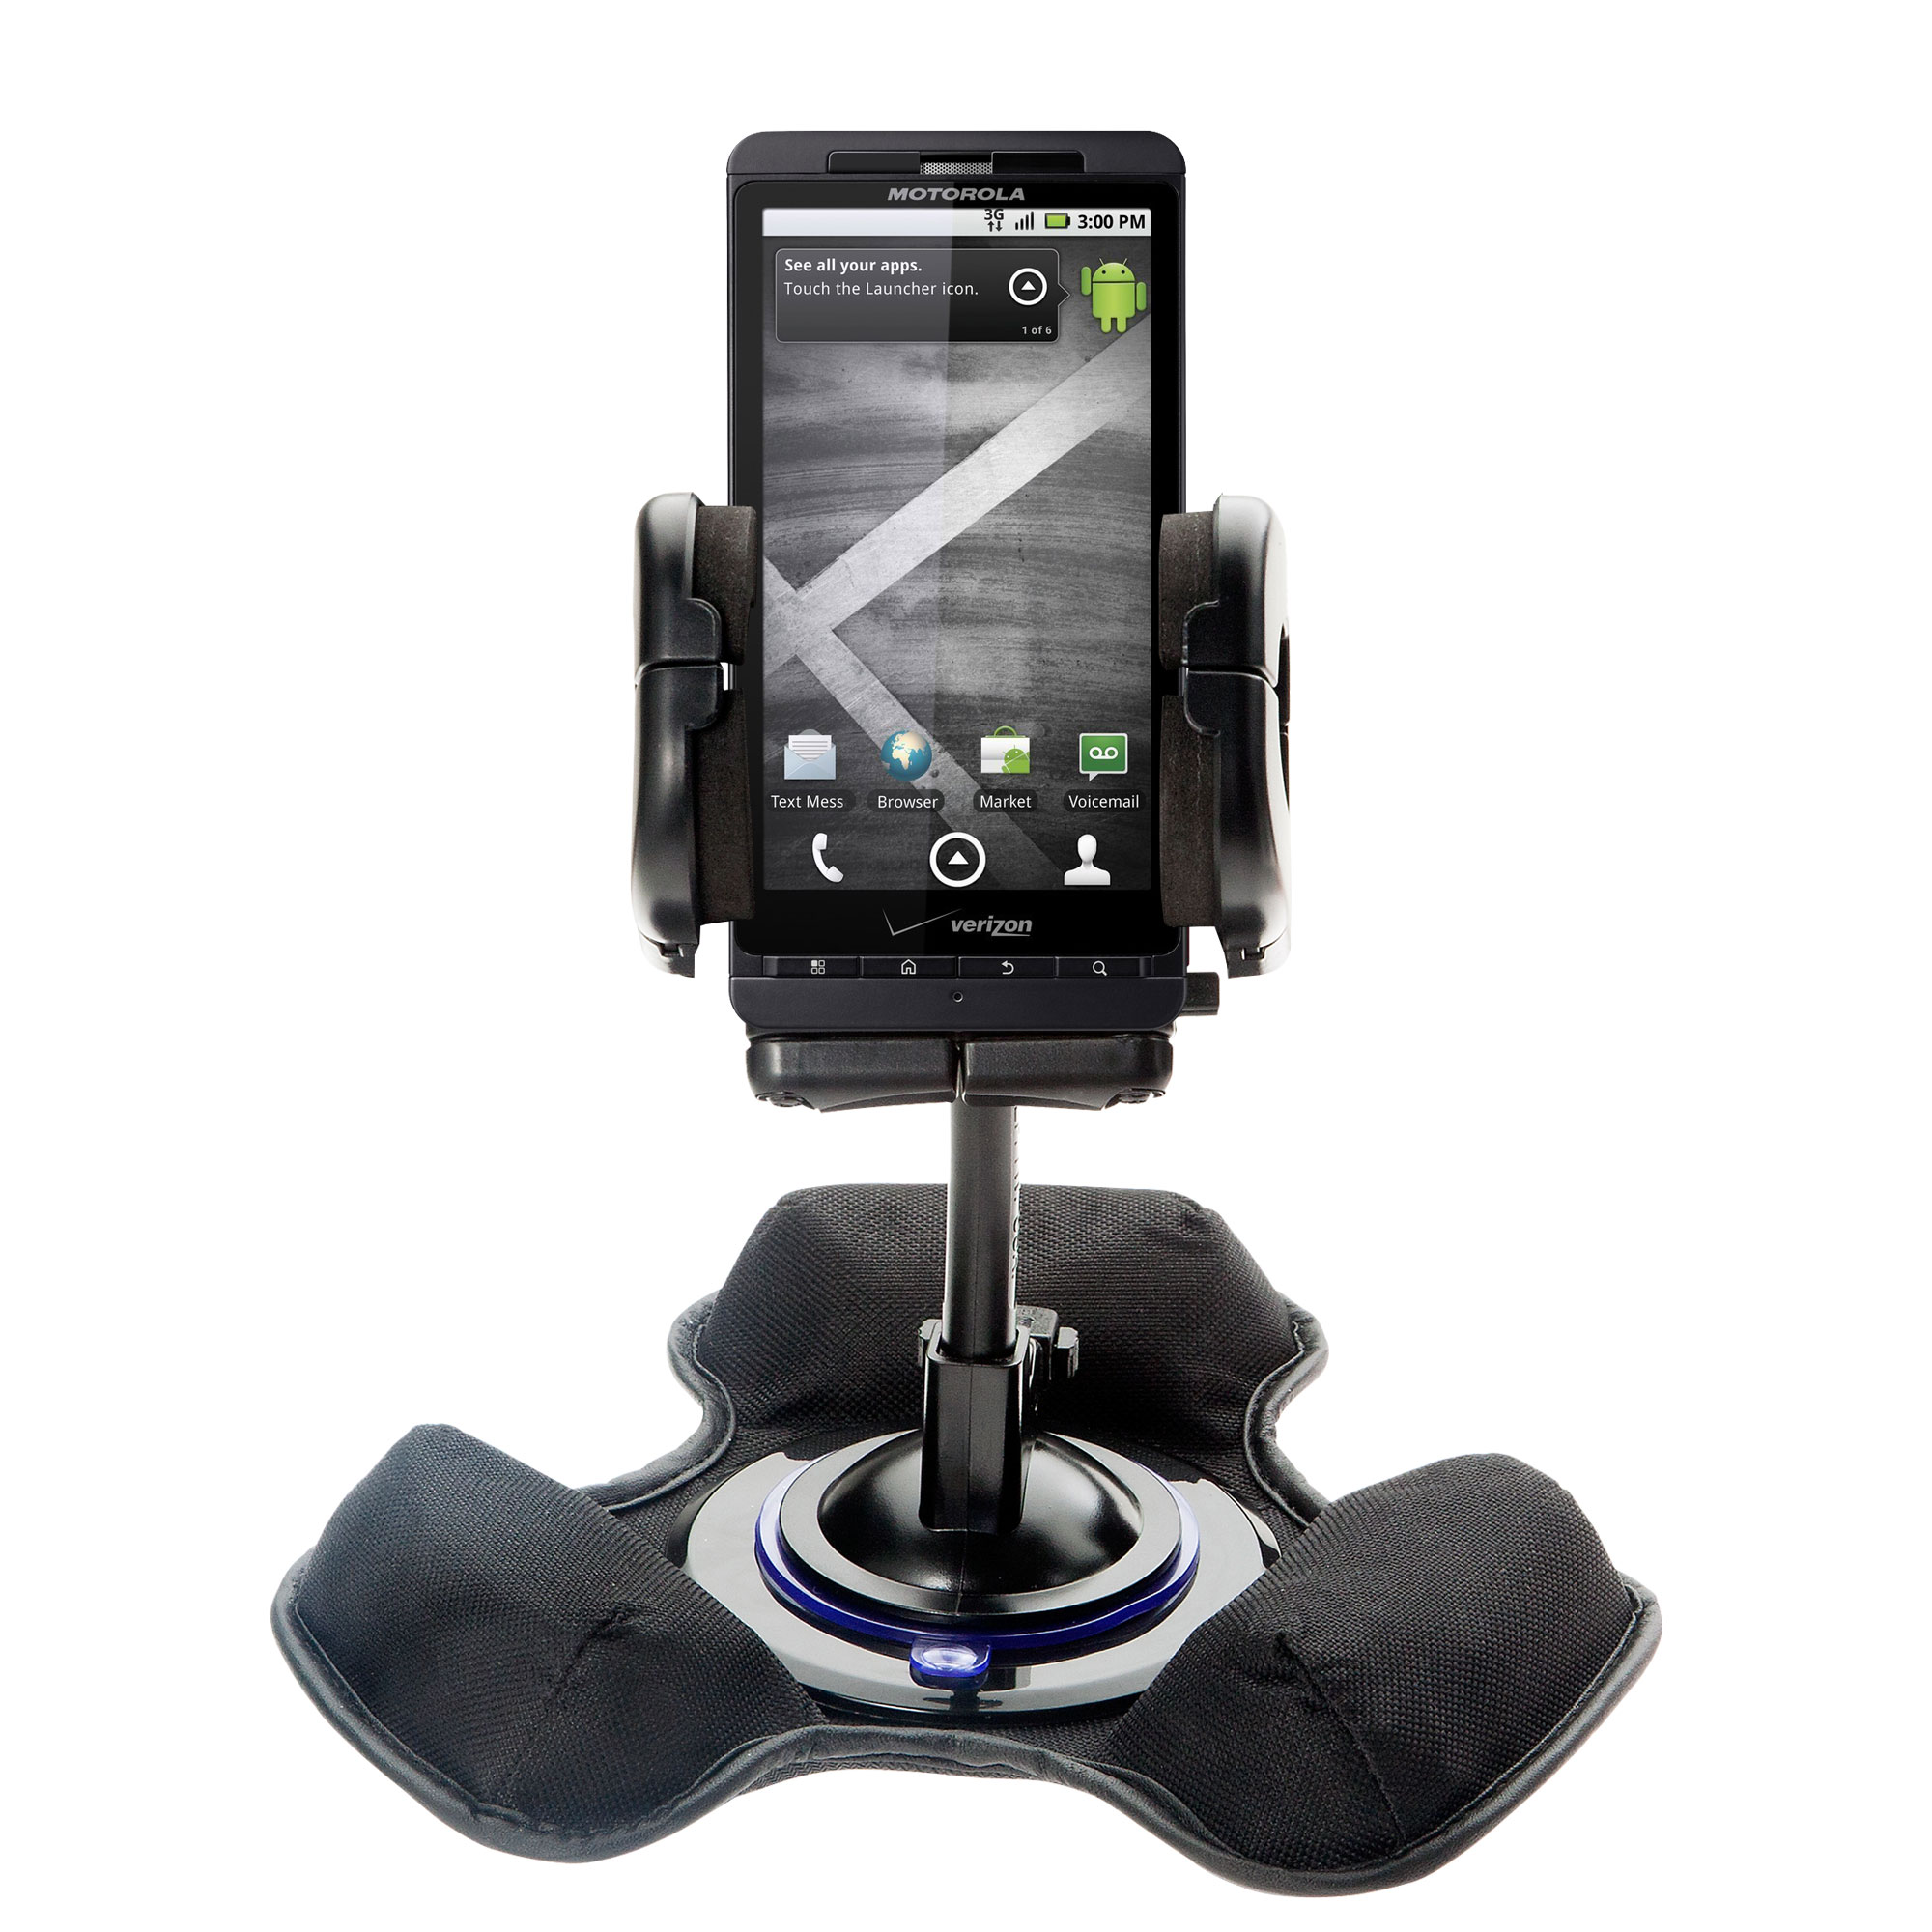 Dash and Windshield Holder compatible with the Motorola Droid X